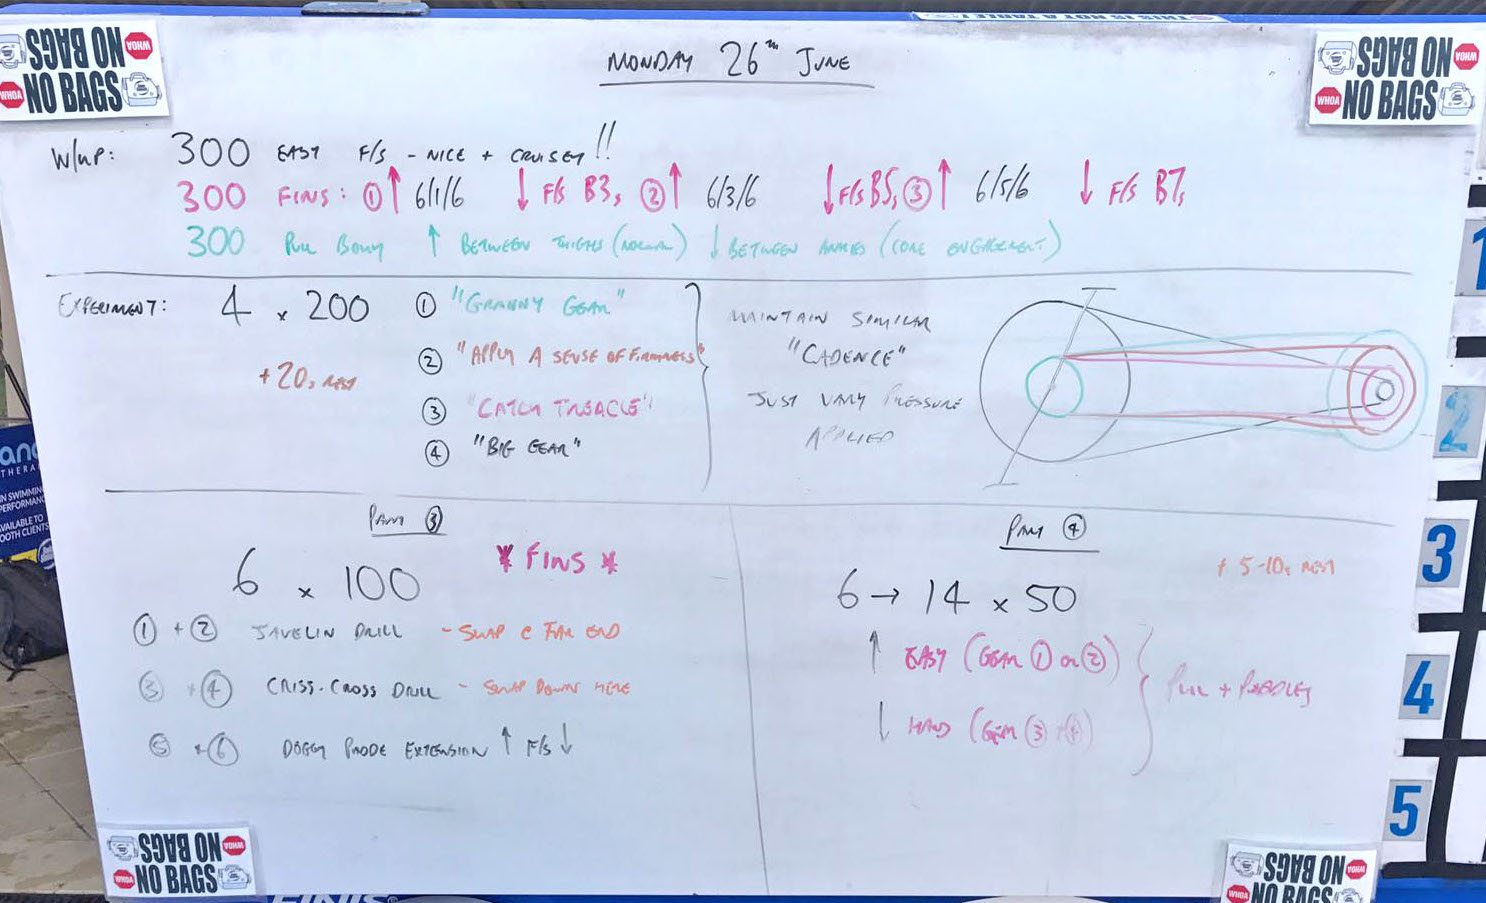 Whiteboard filled with training information